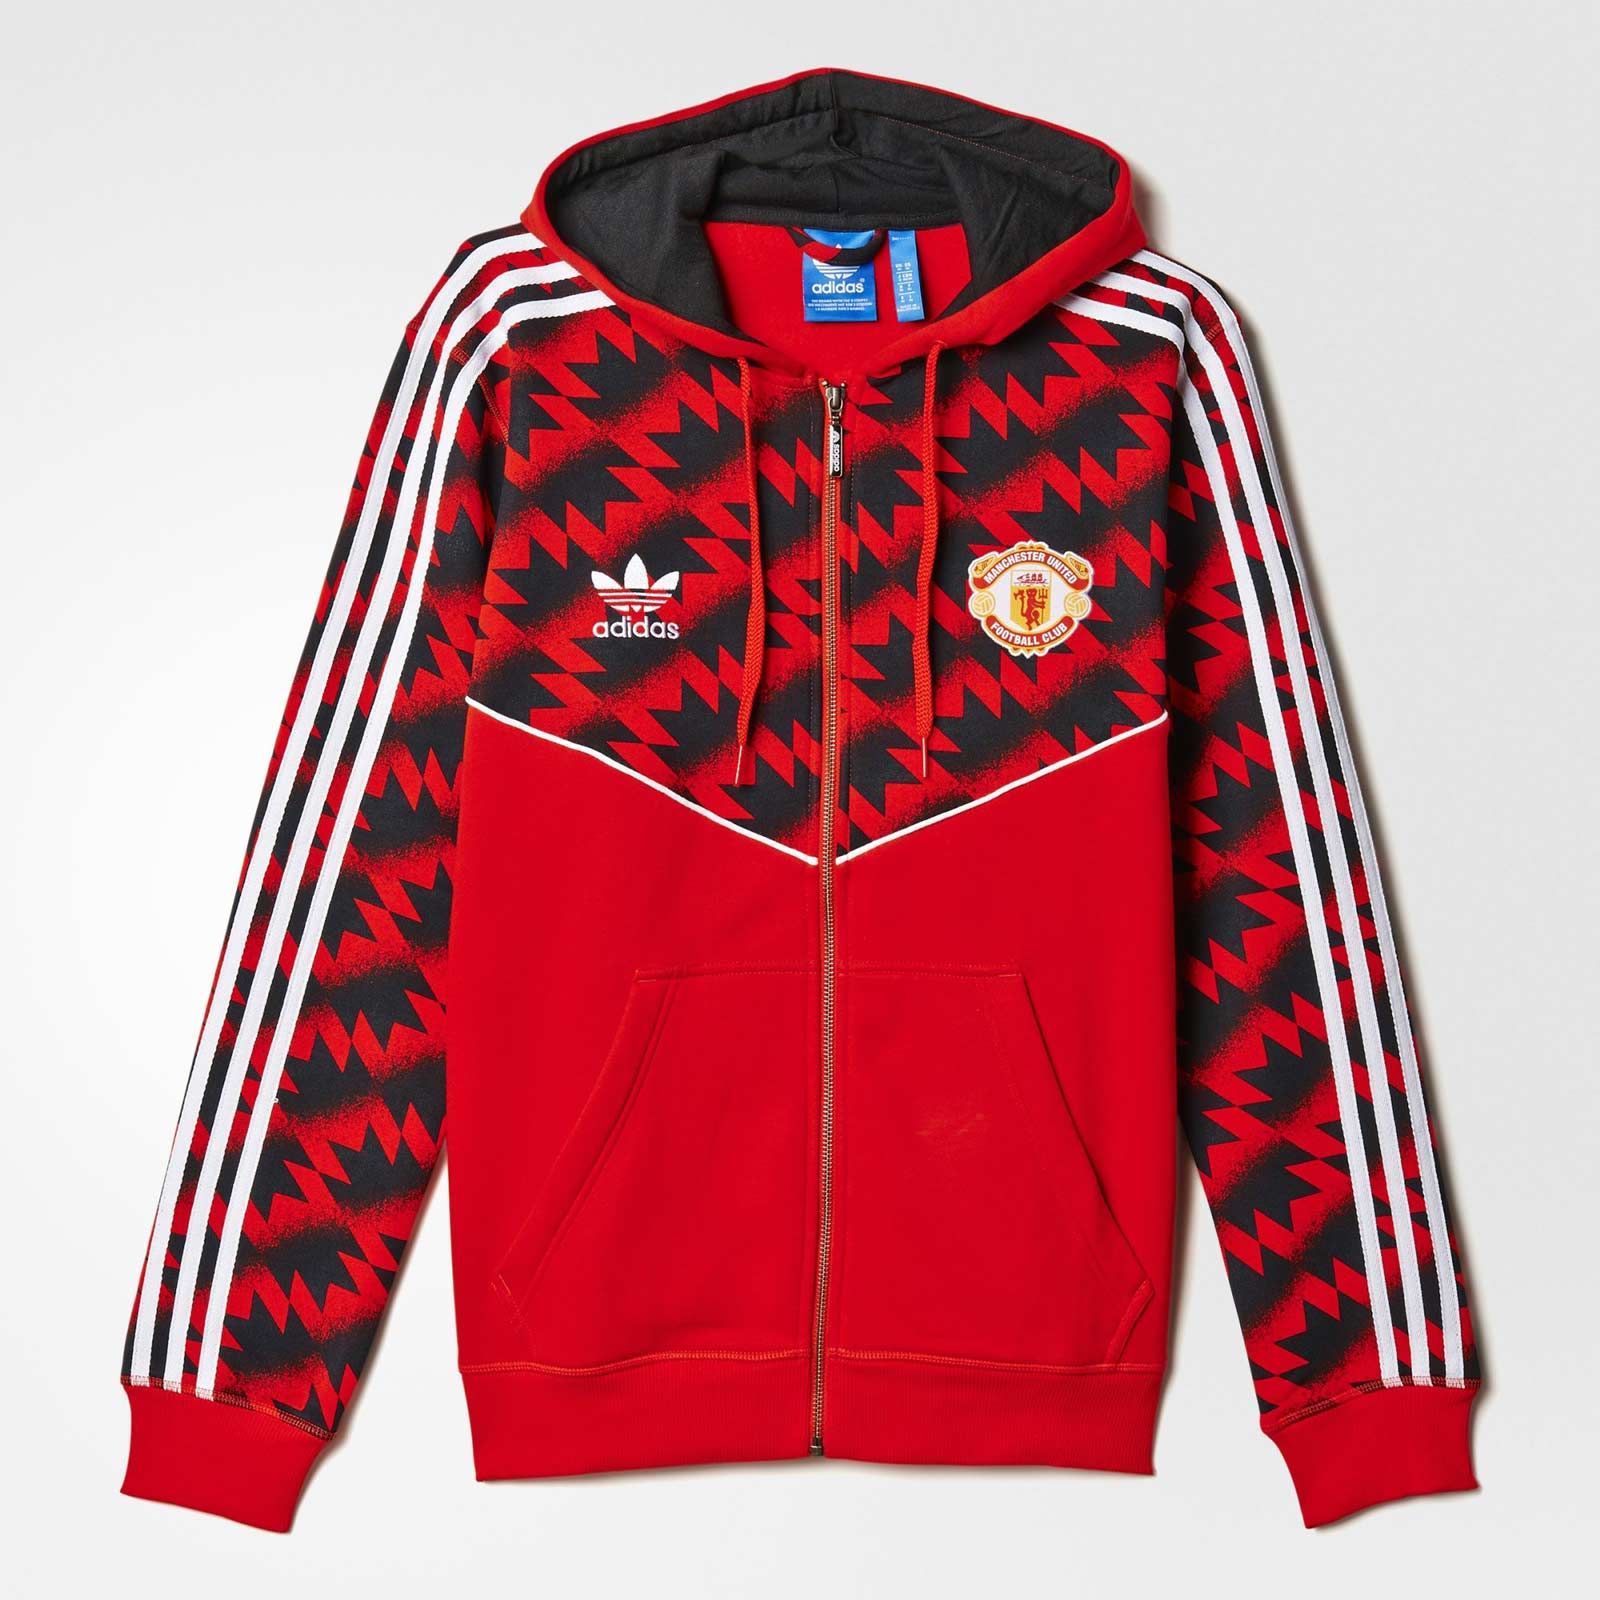 fe11a5648391e New Adidas Originals x Manchester United Collection Revealed - Footy  Headlines